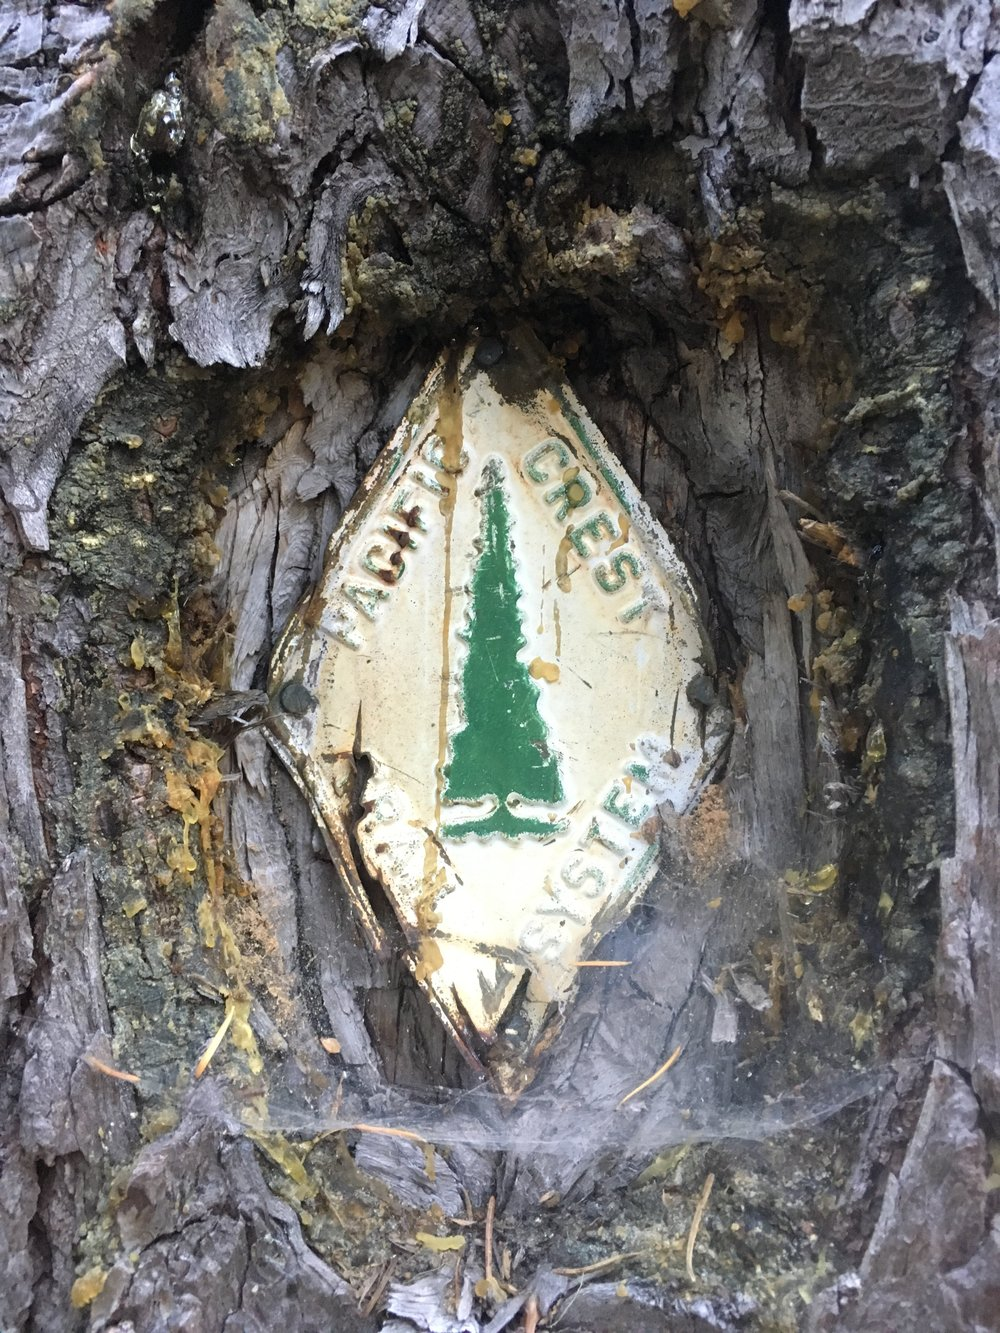 An old-style PCT sign in the Three Sisters Wilderness